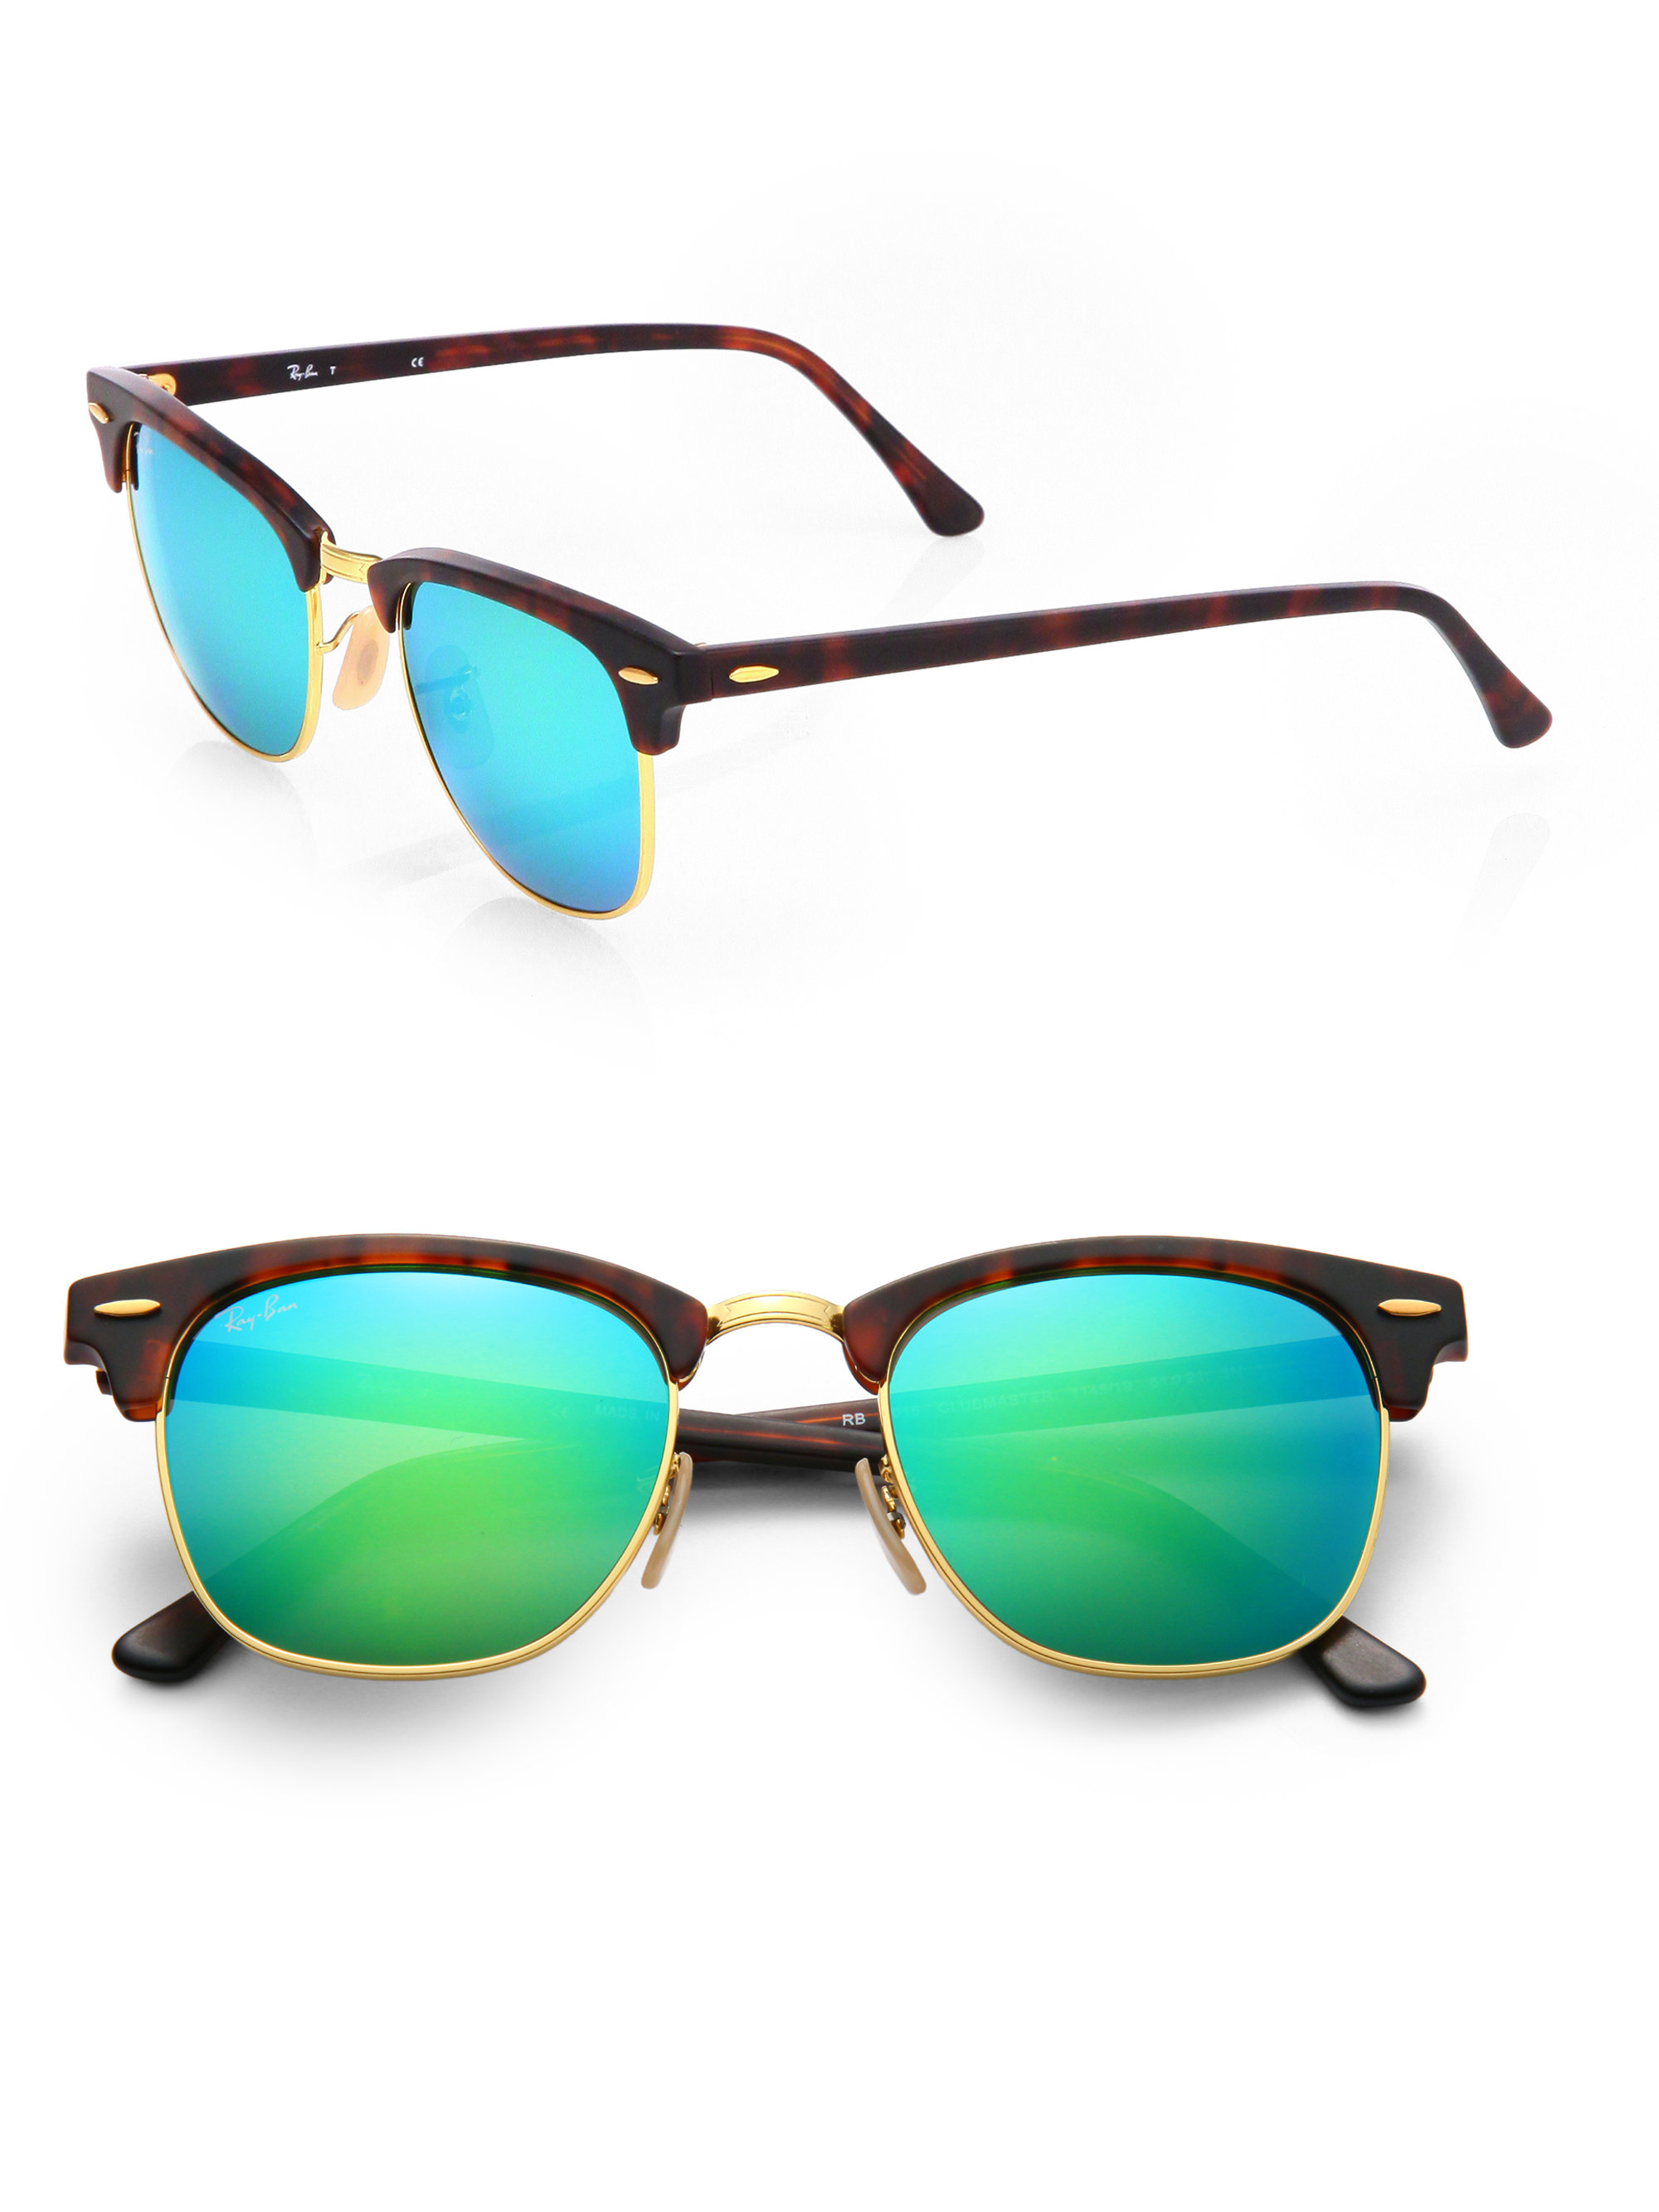 46d3894d6fa Gallery. Previously sold at  Saks Fifth Avenue · Men s Mirrored Sunglasses  Men s Ray Ban Clubmaster ...